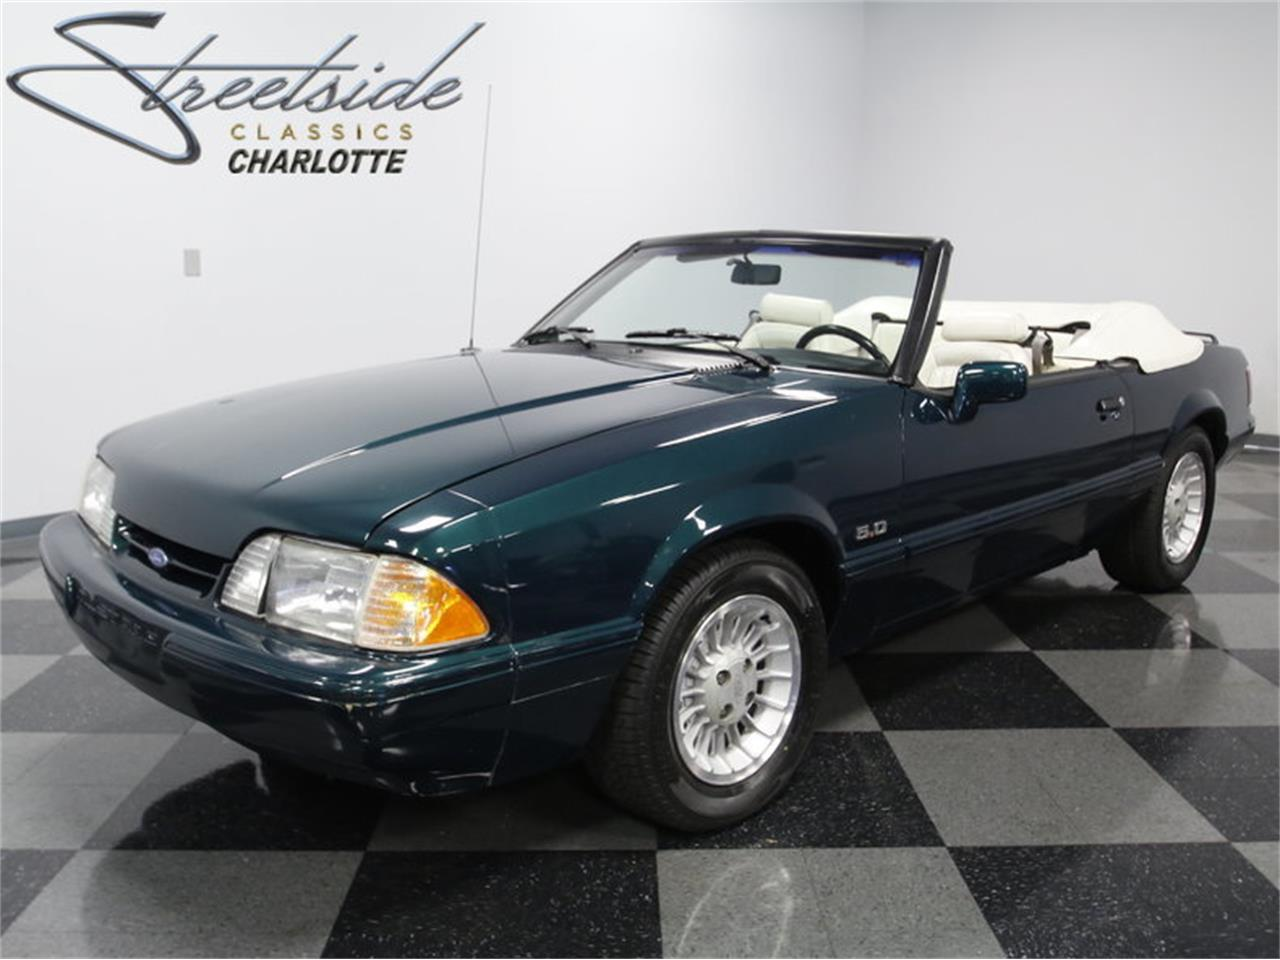 For sale 1990 ford mustang lx 7 up edition in concord north carolina